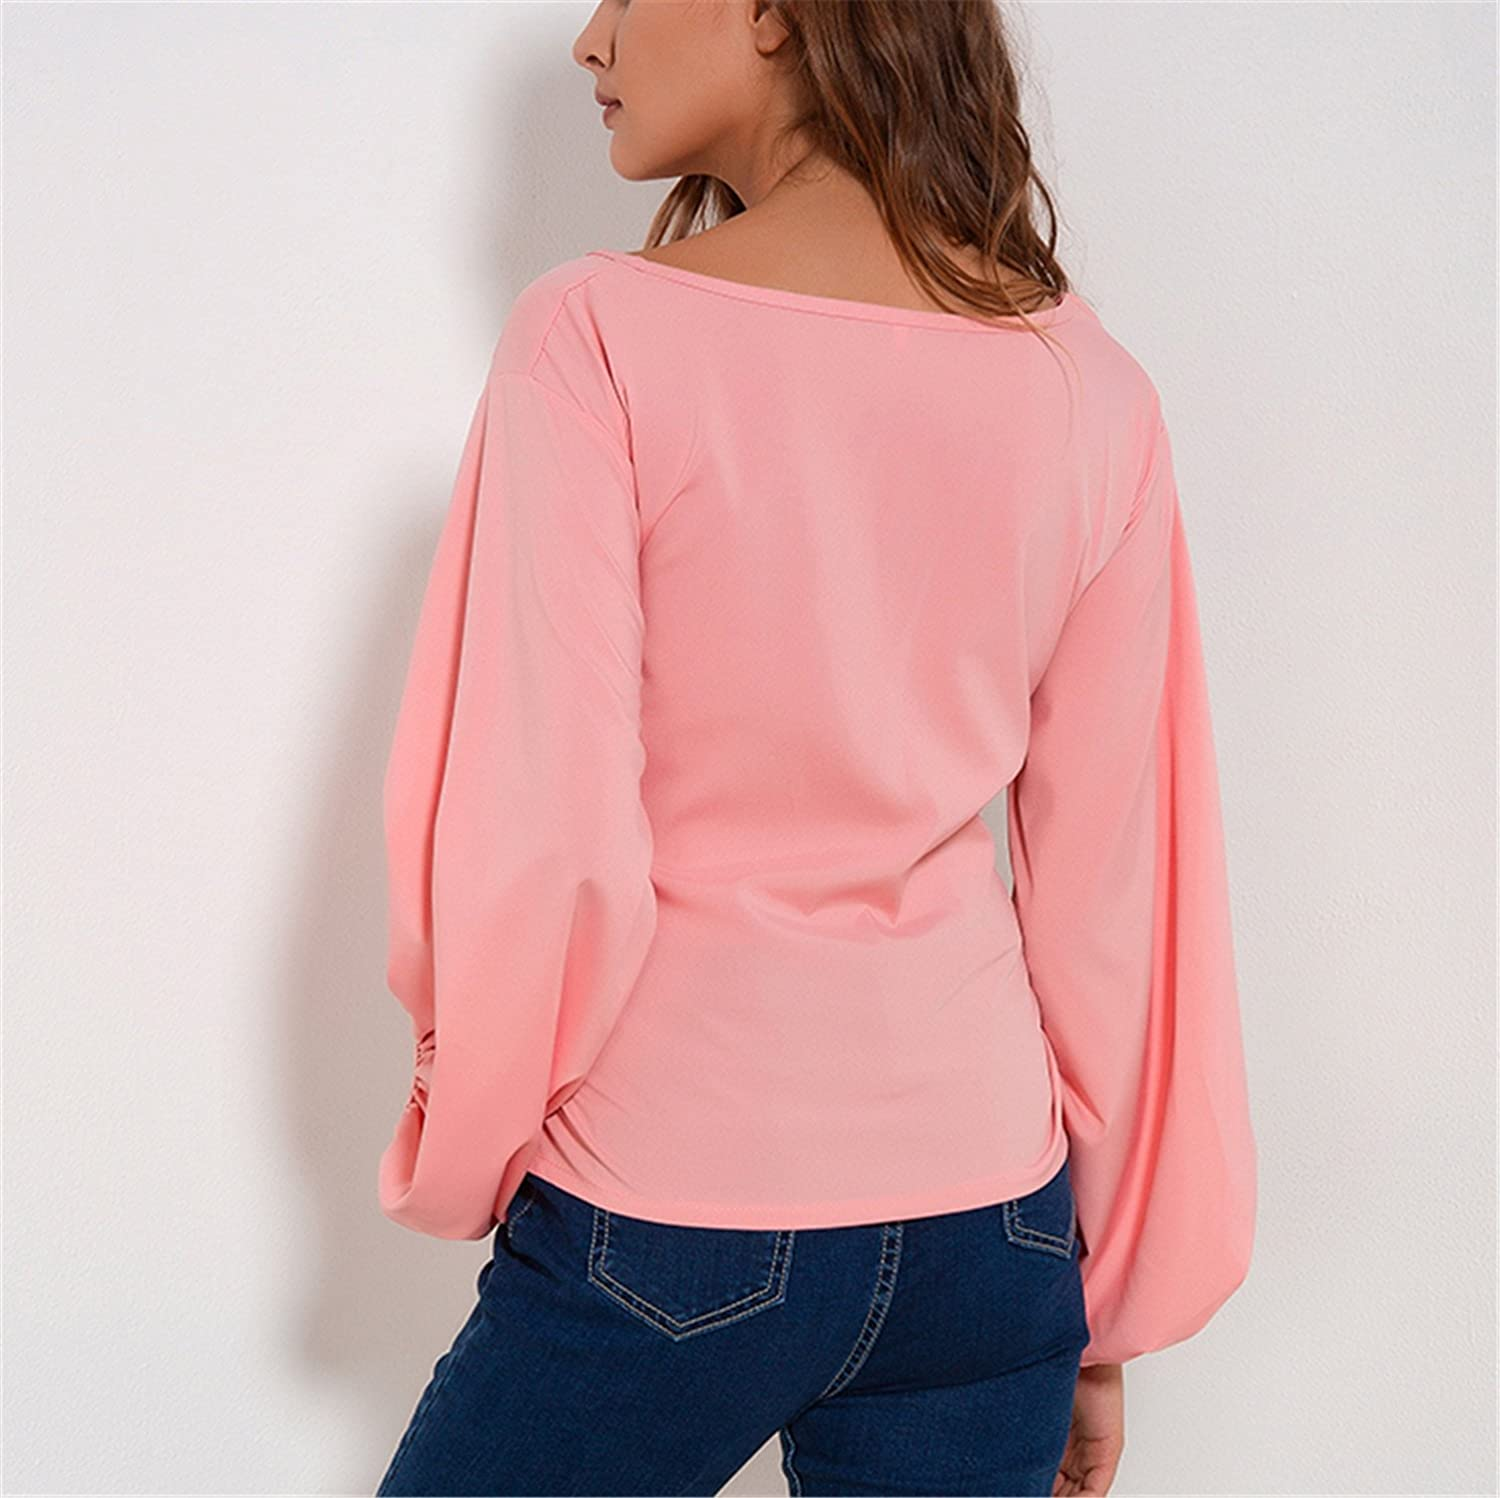 Amazon.com: xiaohuihuihui Chiffon Wrap Blouse Women Shirts Autumn 2018 Fashion Lantern Long Sleeve Blouses With Bow Belt Loose Casual Tops Womens Clothing ...